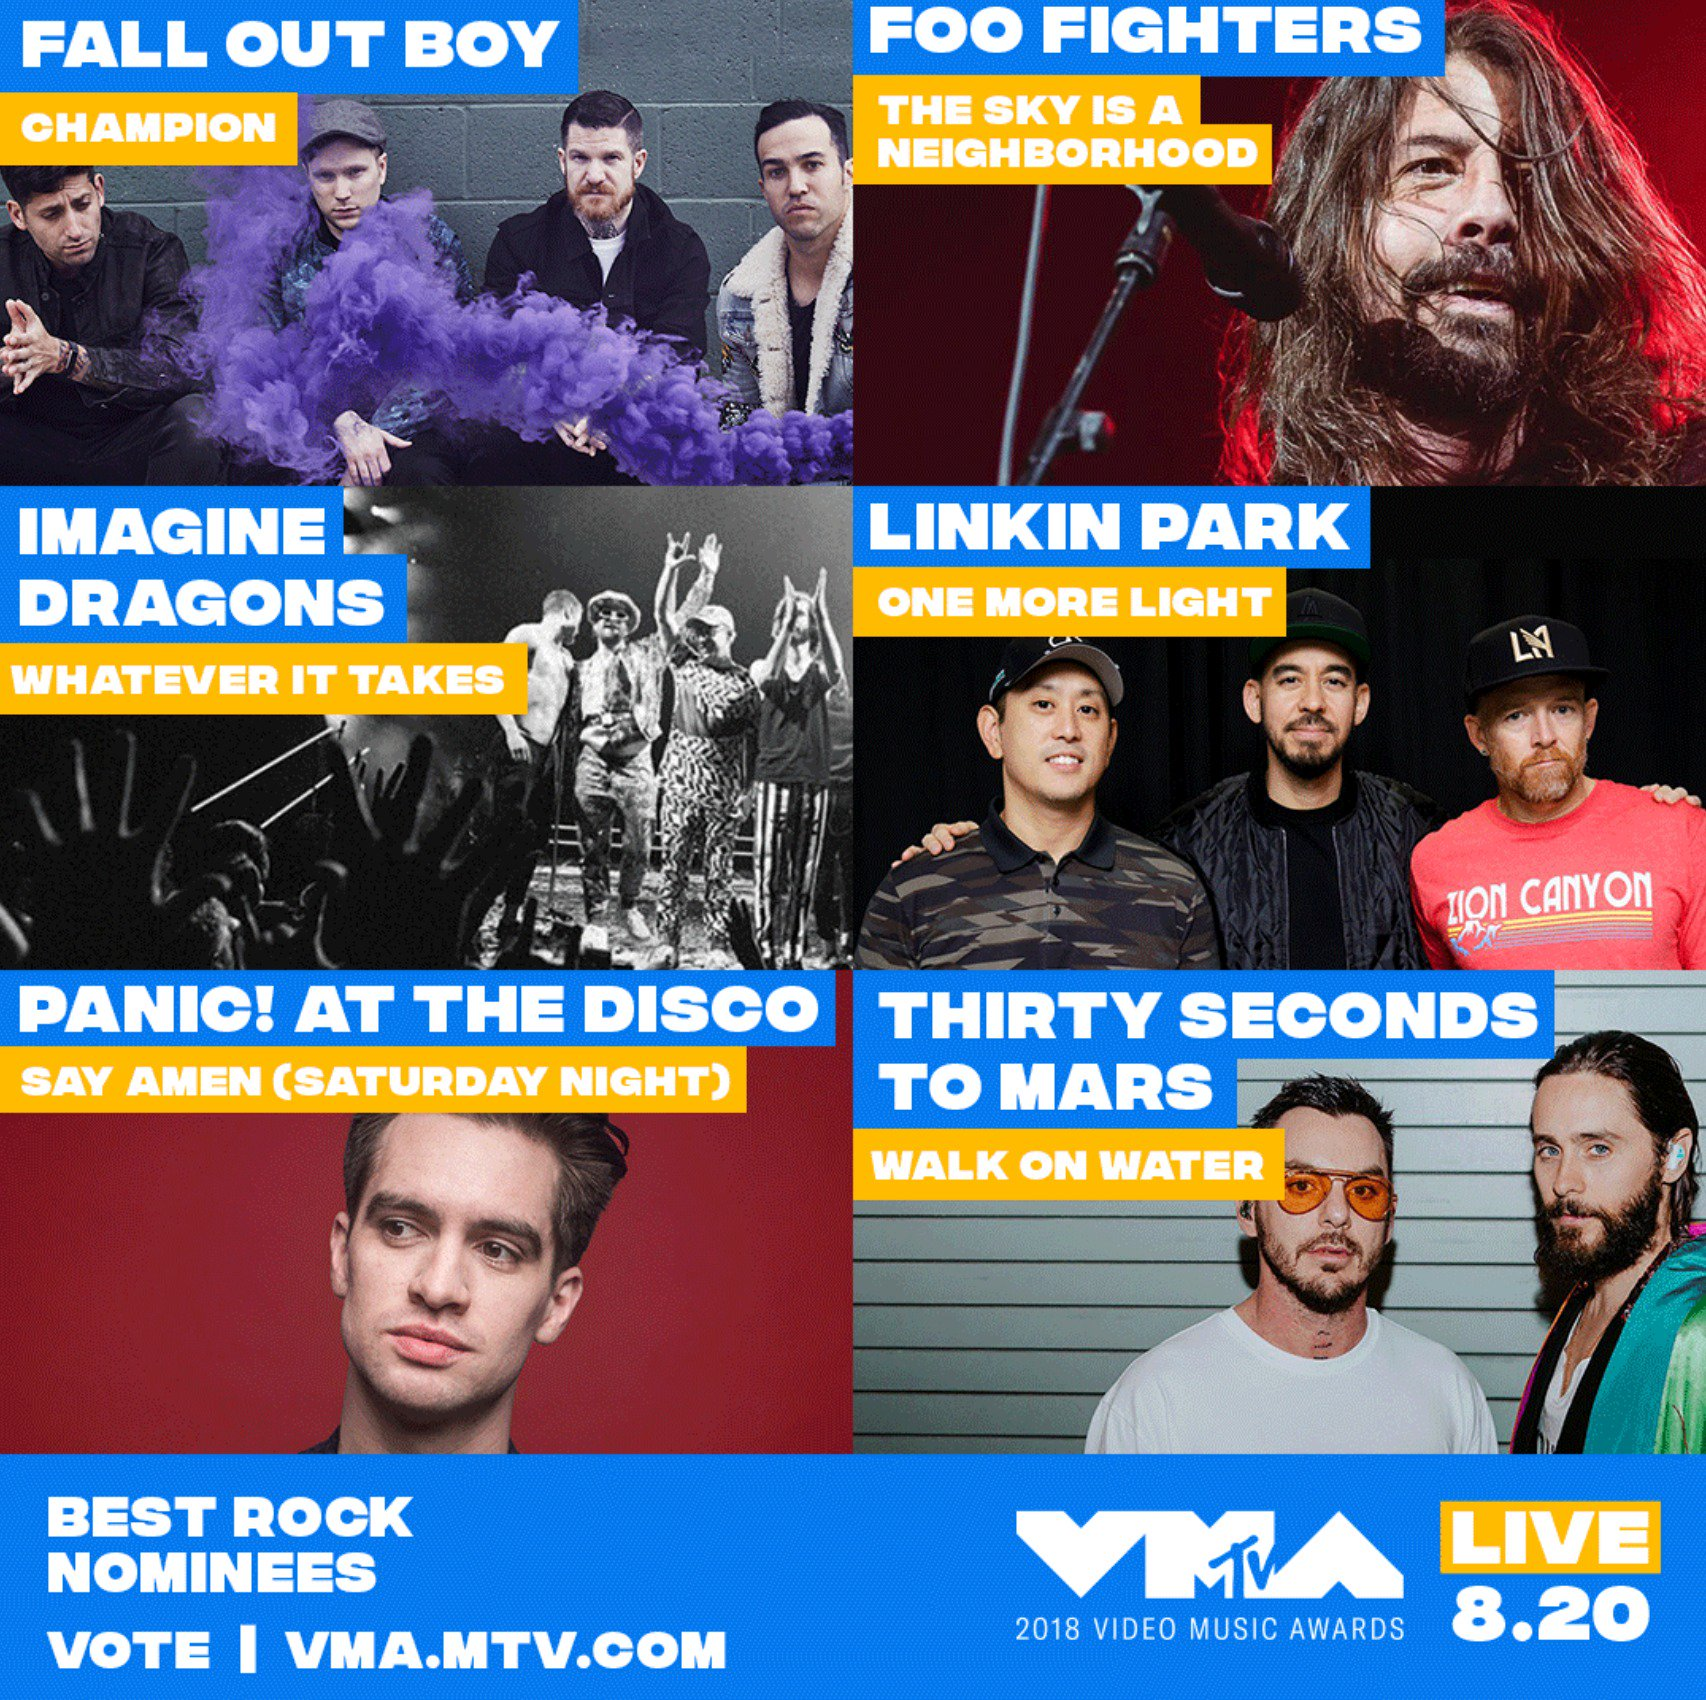 wonder who will come out as the Champion for Best Rock at the #VMAs �� psst, go vote https://t.co/gYx1w2efc7 https://t.co/uu1xiufrA6